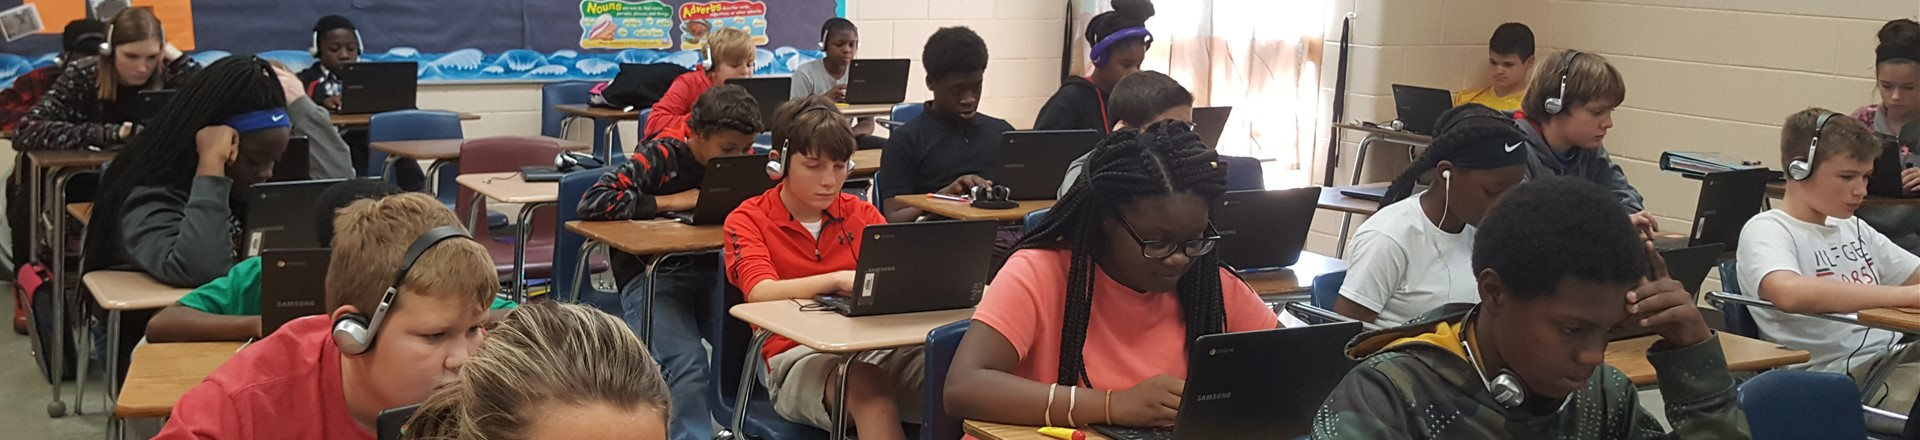 Students using technology in the classroom